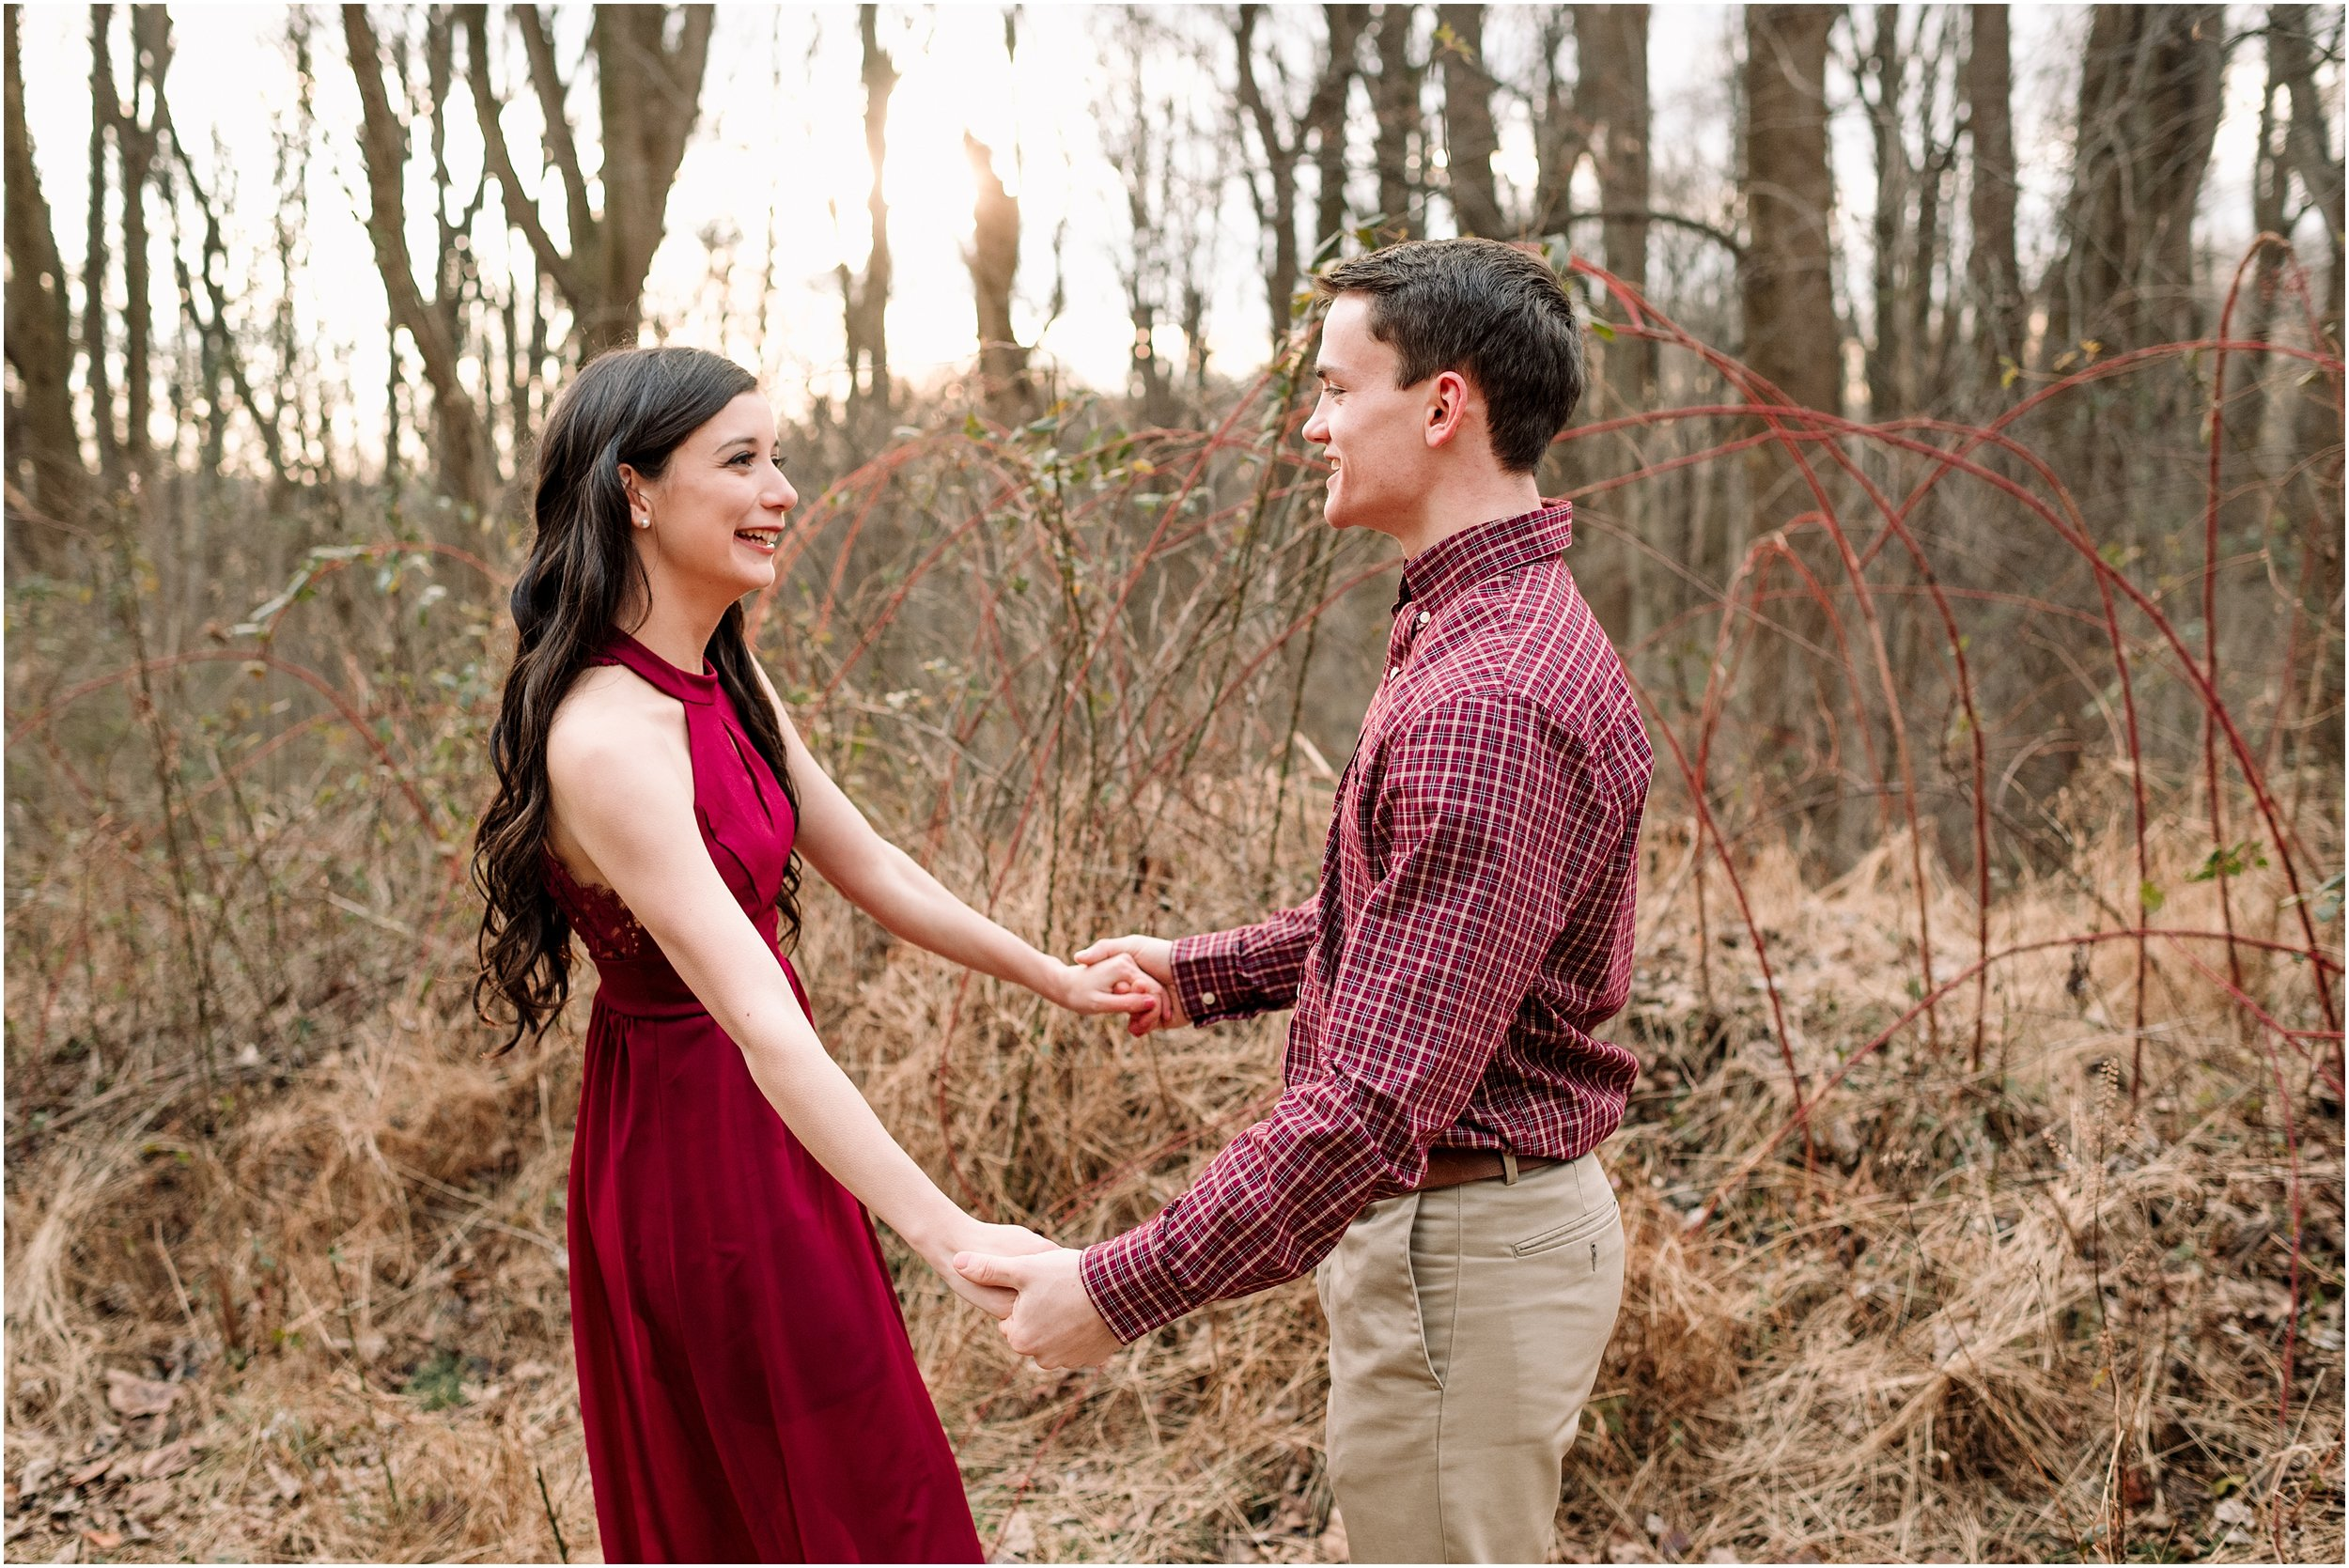 hannah leigh photography winter overlook engagement session lancaster PA_2647.jpg